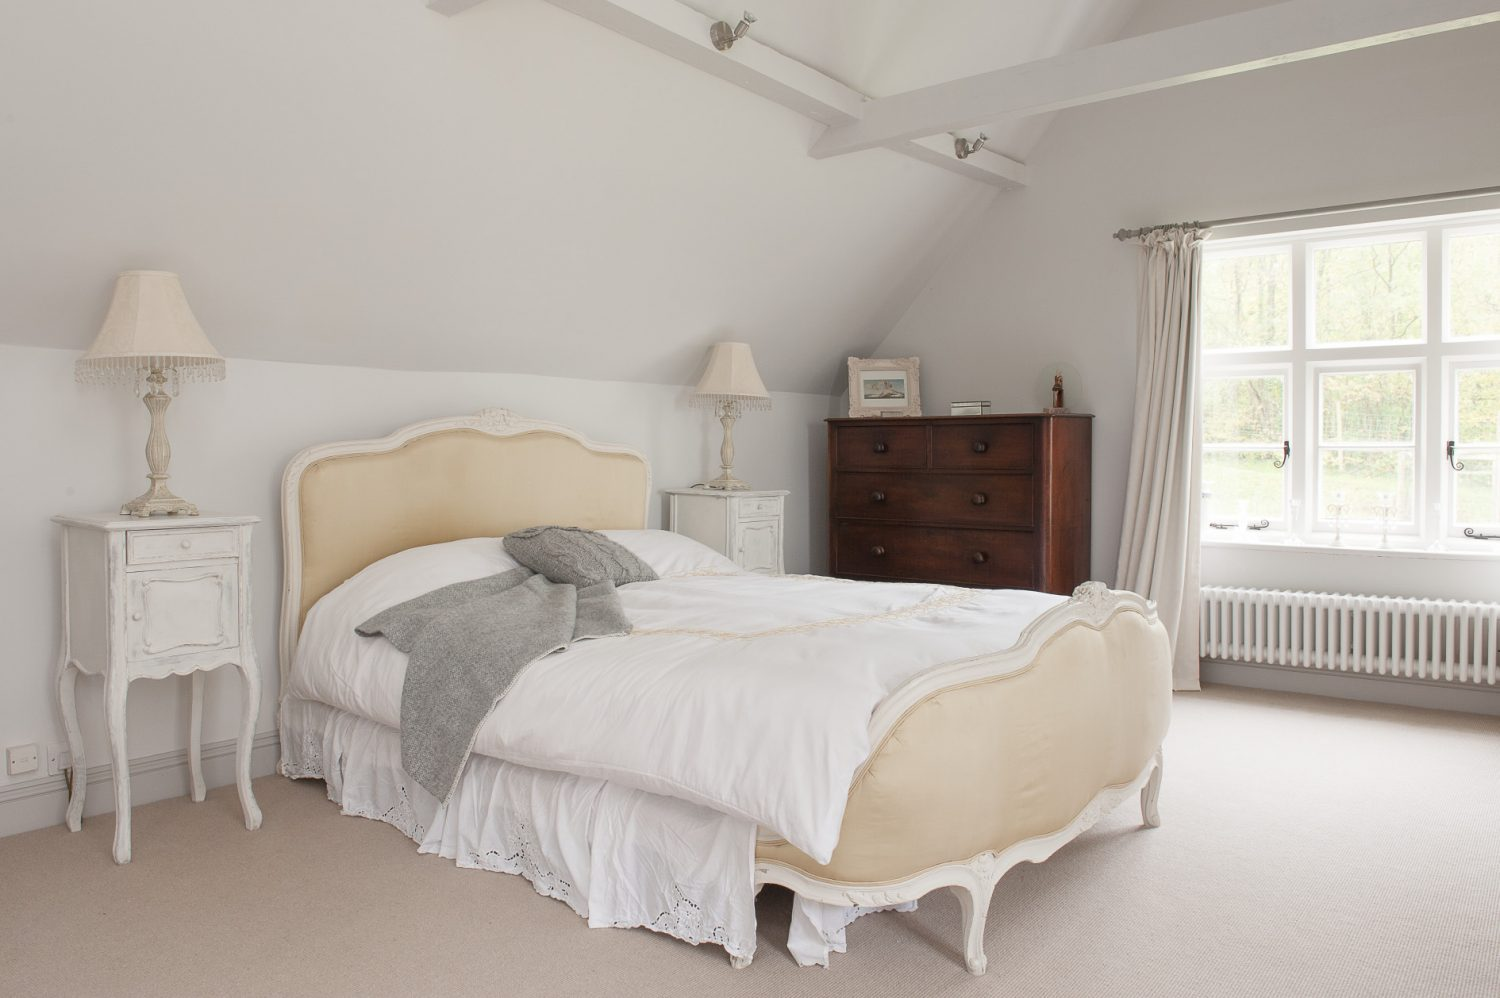 The couple have removed the ceiling in the bedroom and created a new and dramatic vaulted space, the perfect setting for the grand French bed from 'Tasha Interiors